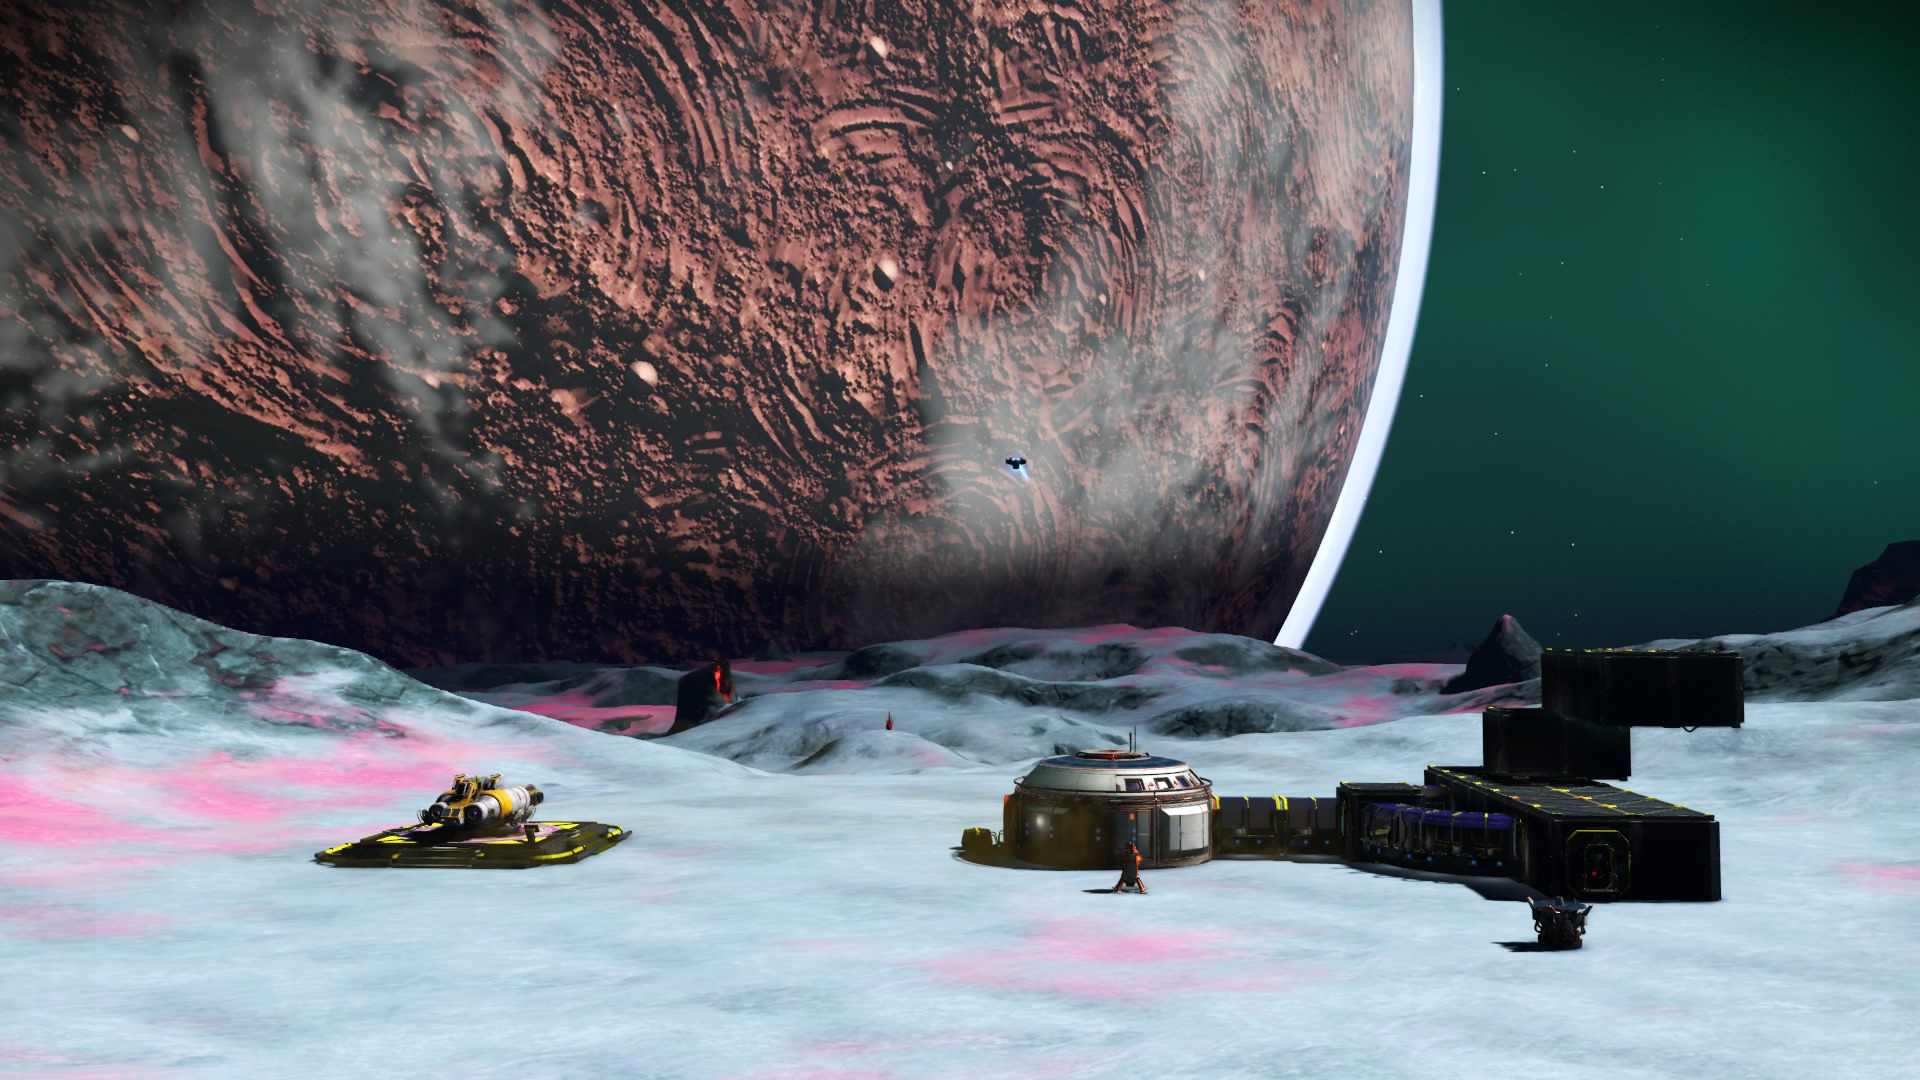 Screenshot of a location in the No Man's Sky video game showing a moon and the Arpinsarypov Mother Base.